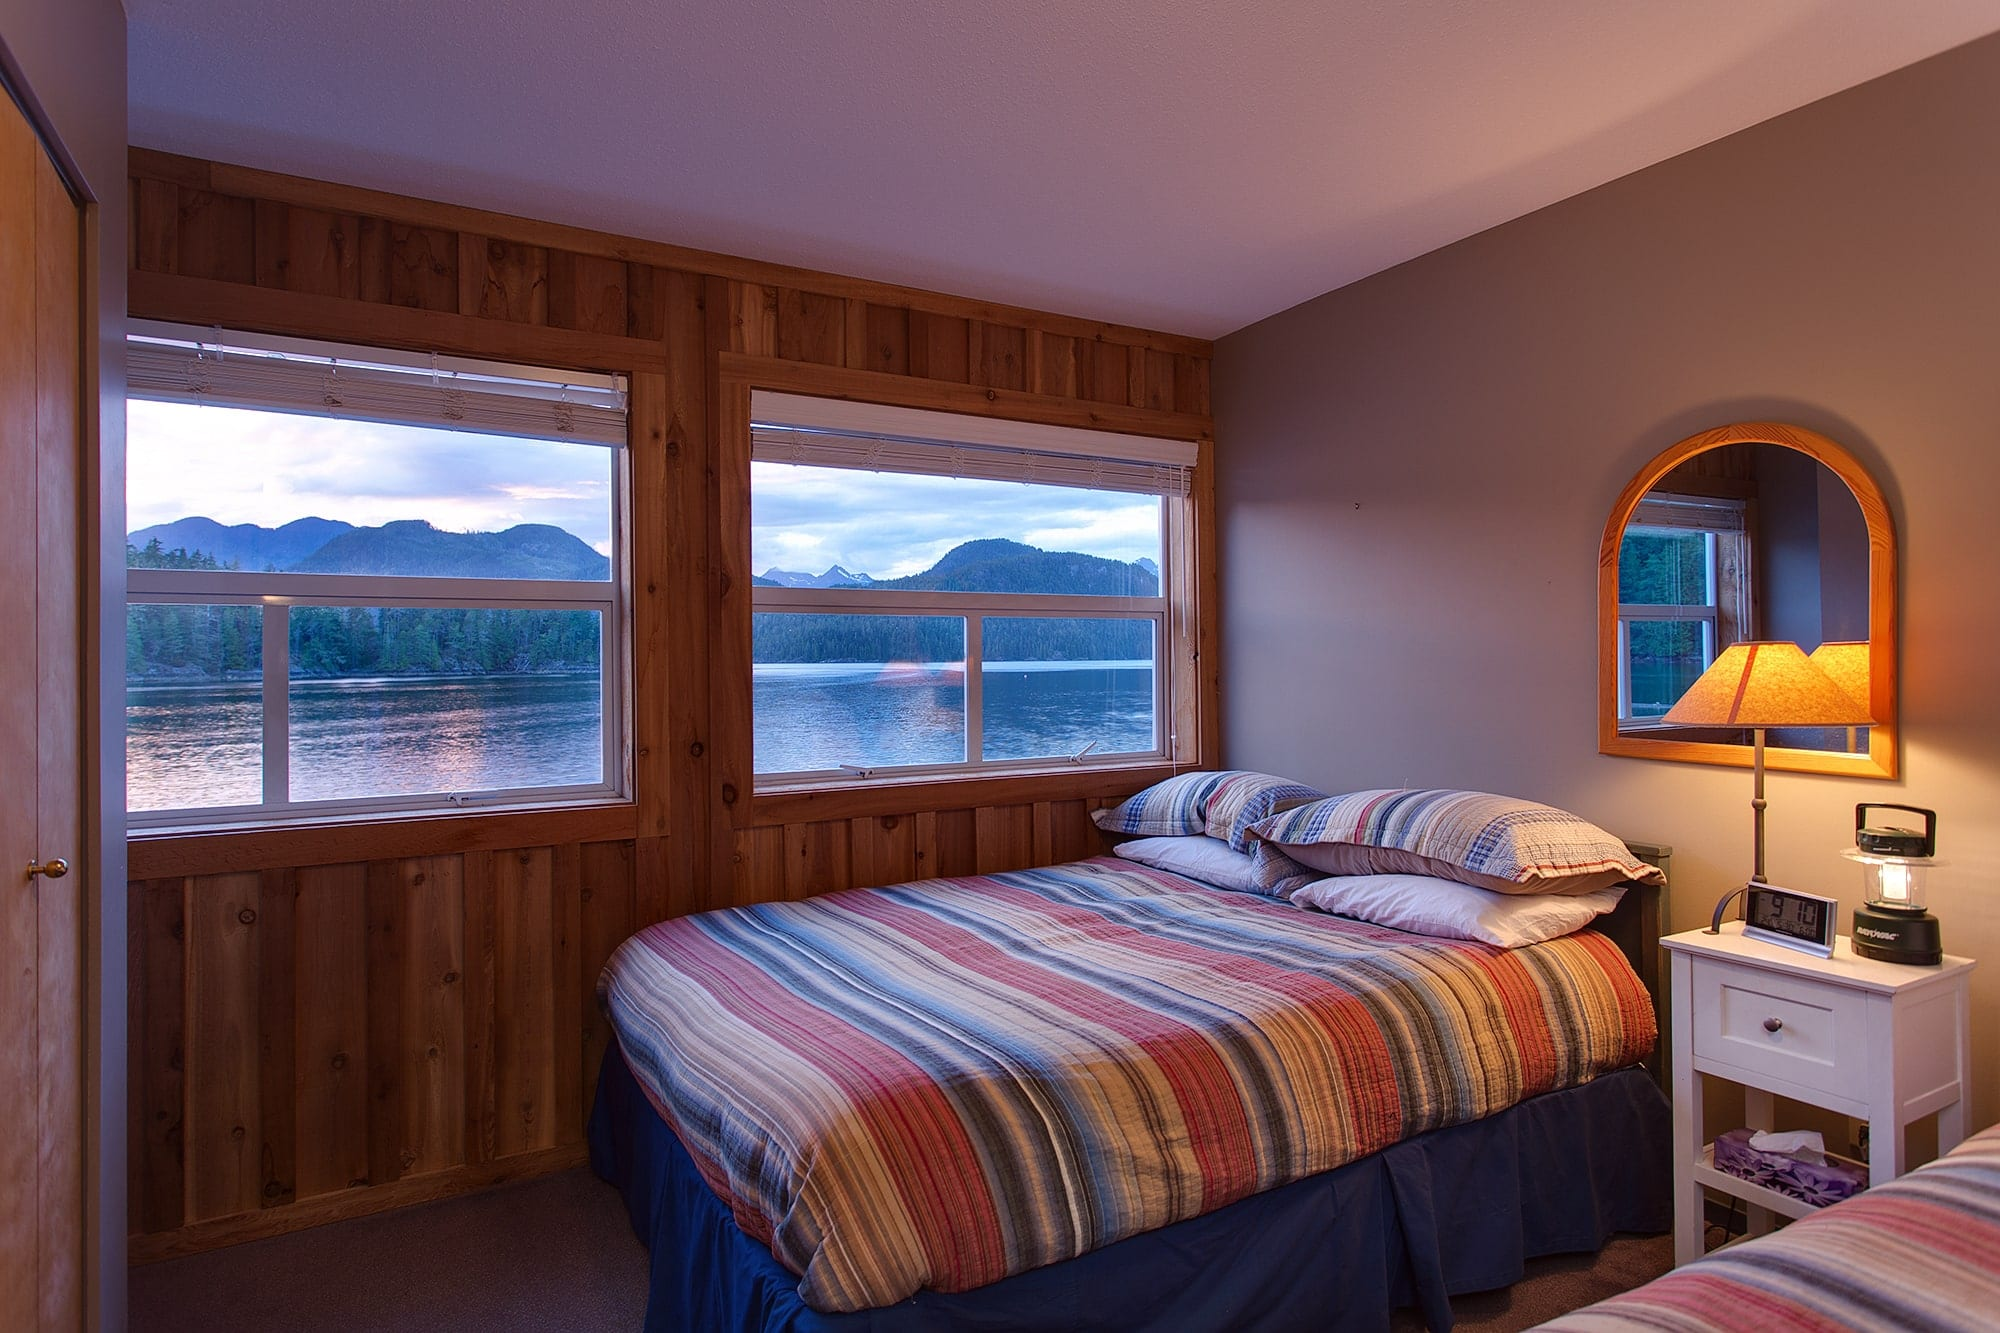 Nootka Wilderness lodge bedroom with view of lake and mountains.